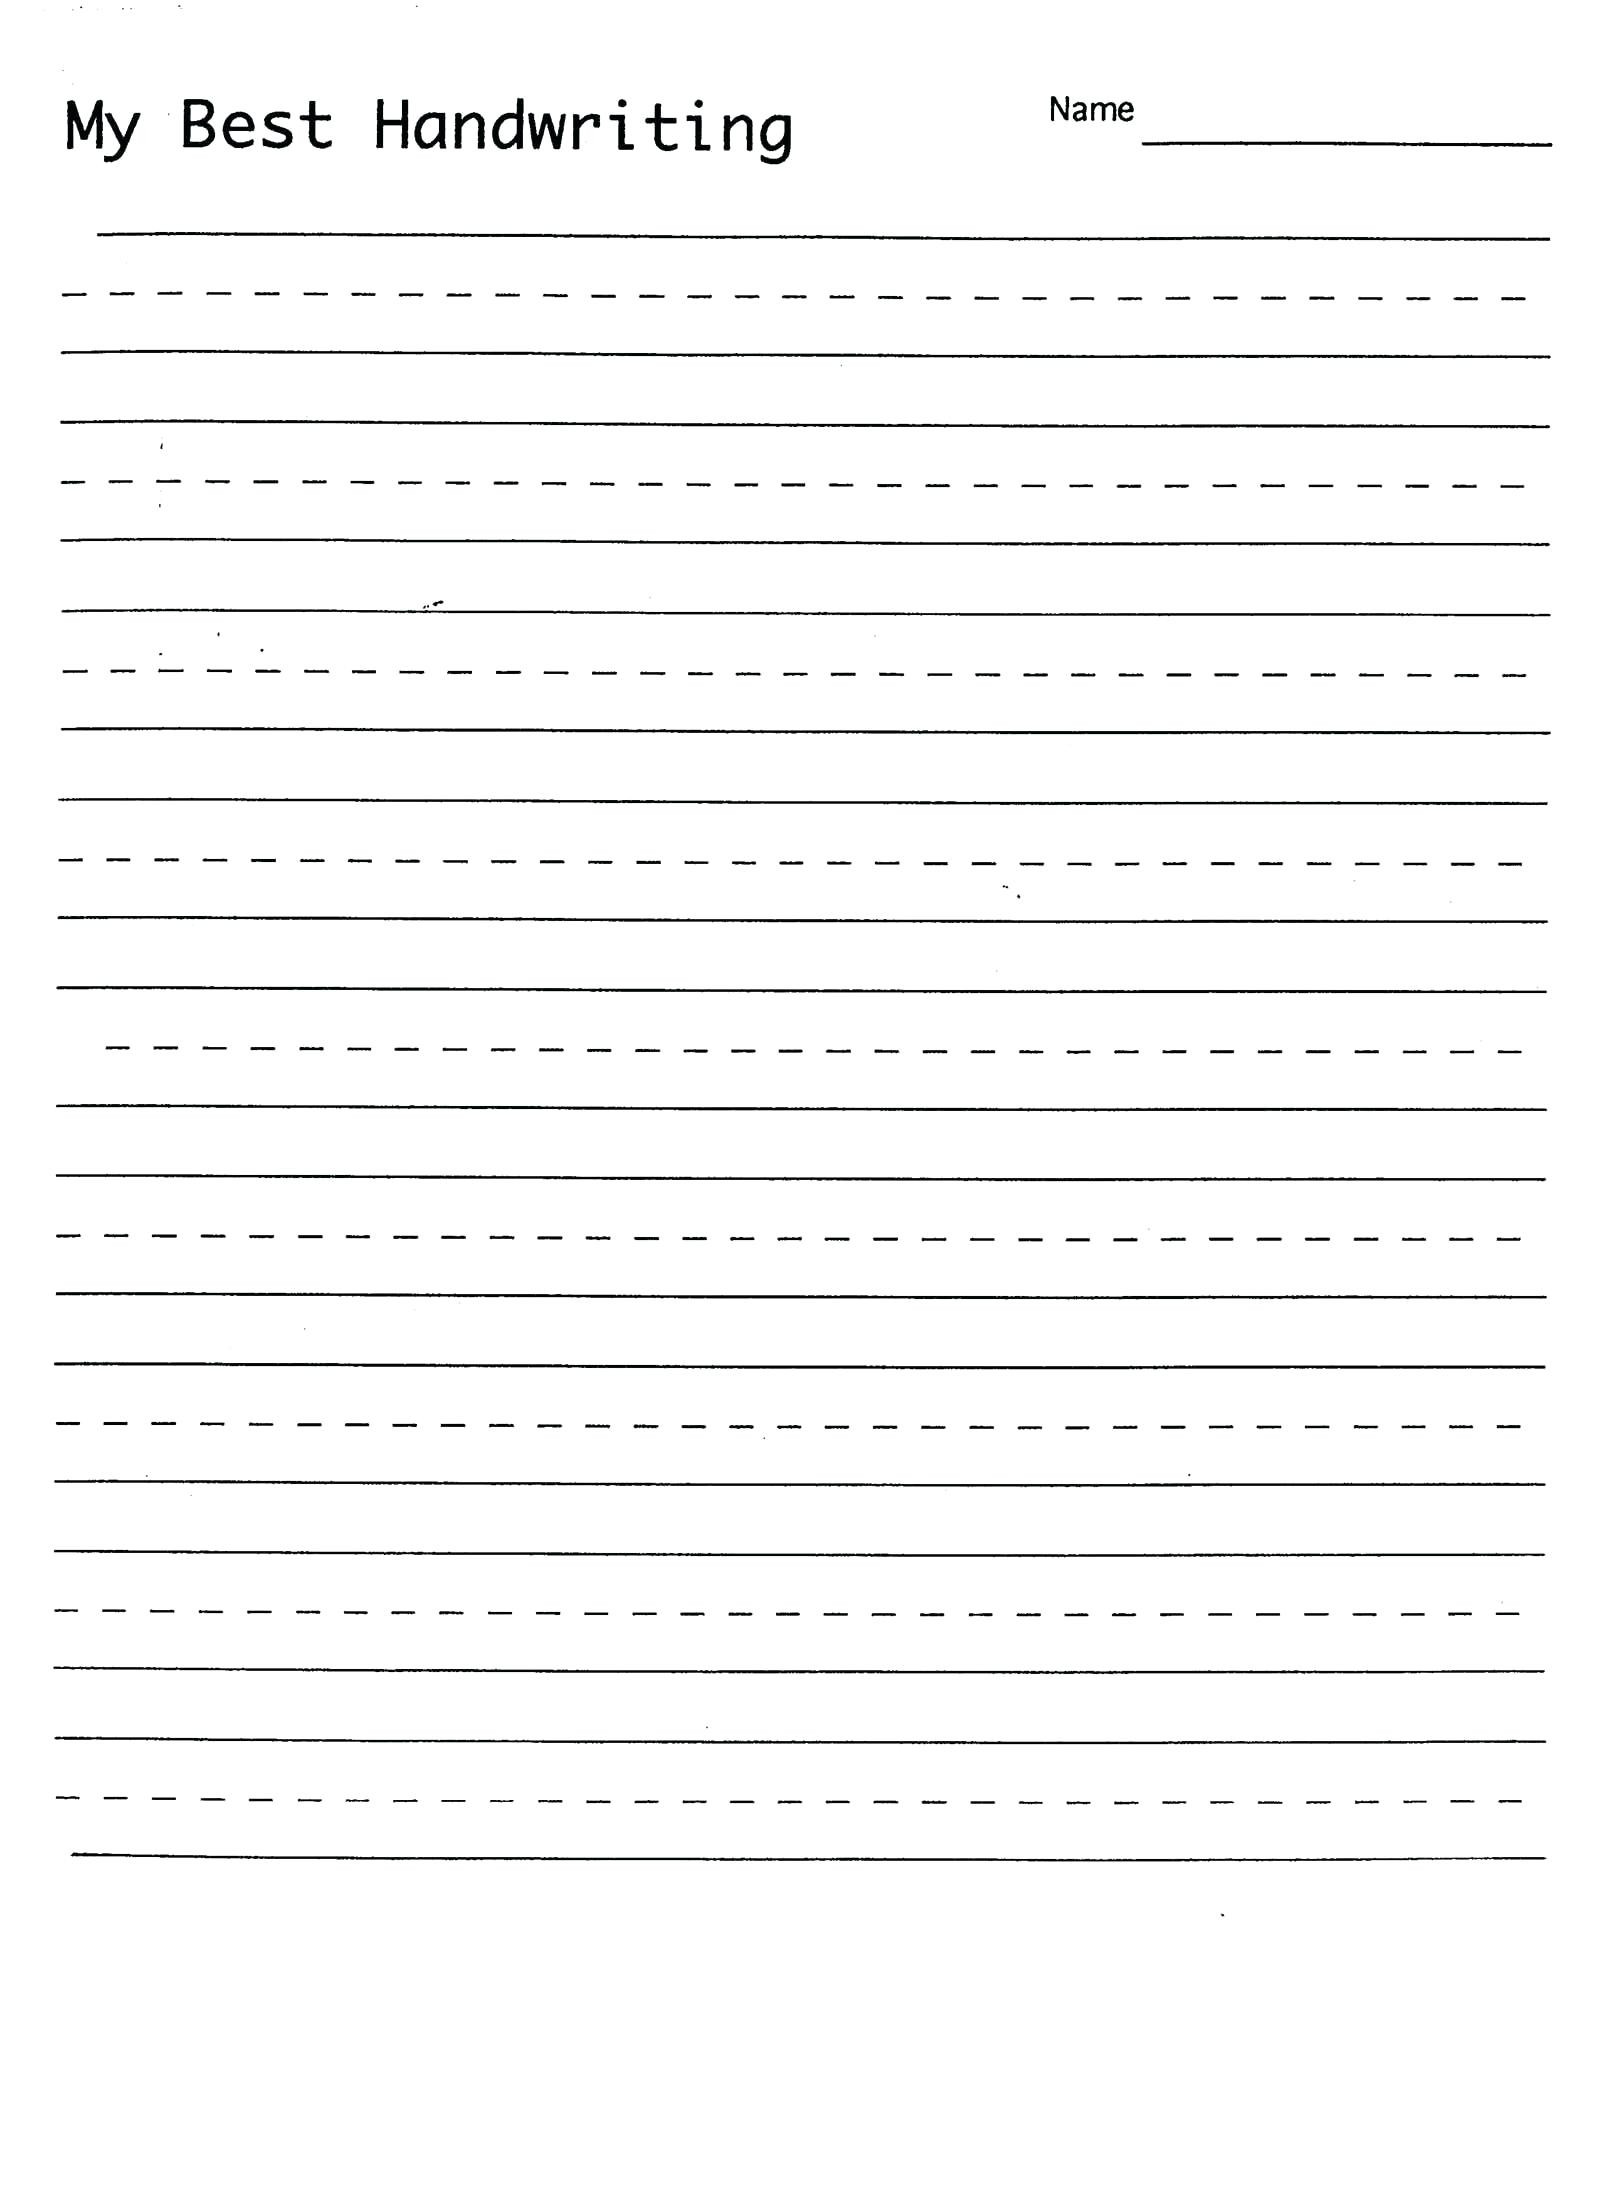 Spelling Worksheets 3rd Grade Worksheet Free Children Clip Art 1st Grade